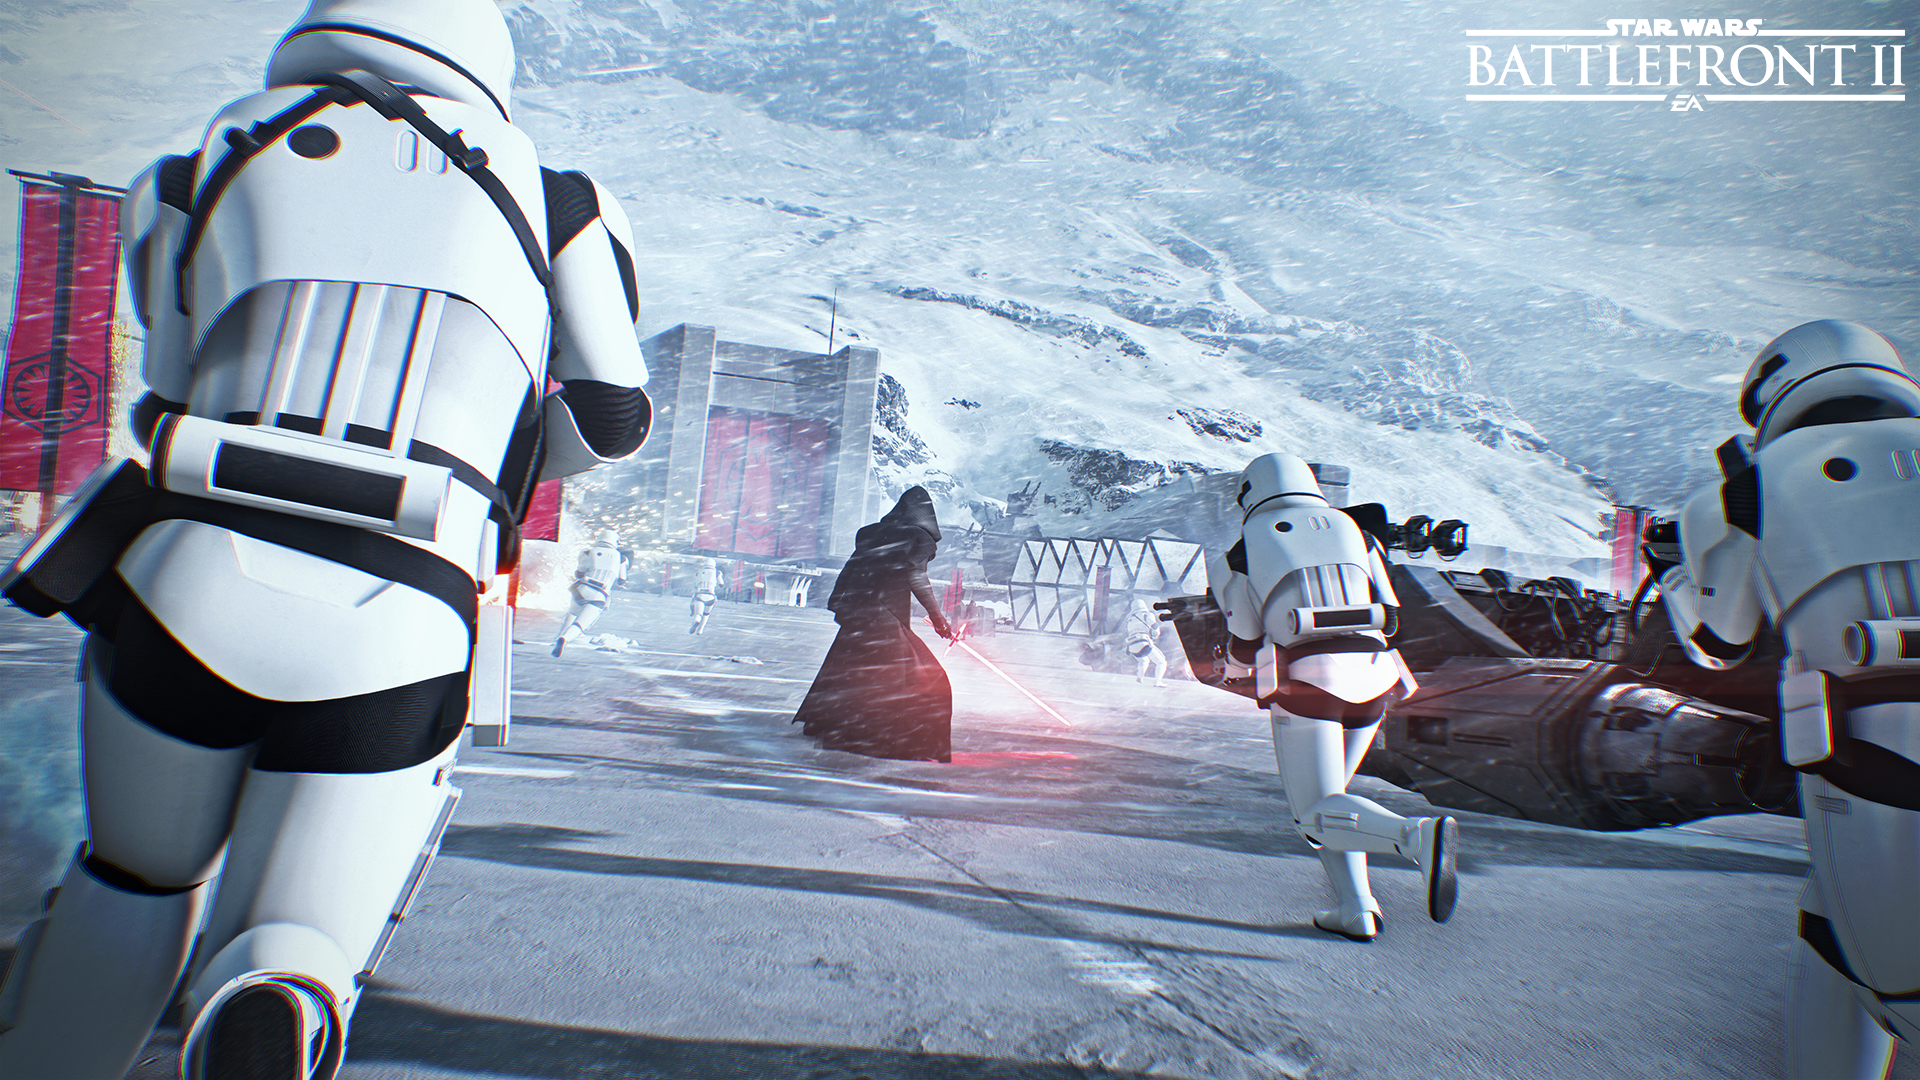 Star Wars Battlefront II's Split-Screen Co-Op Will Be Console-Only